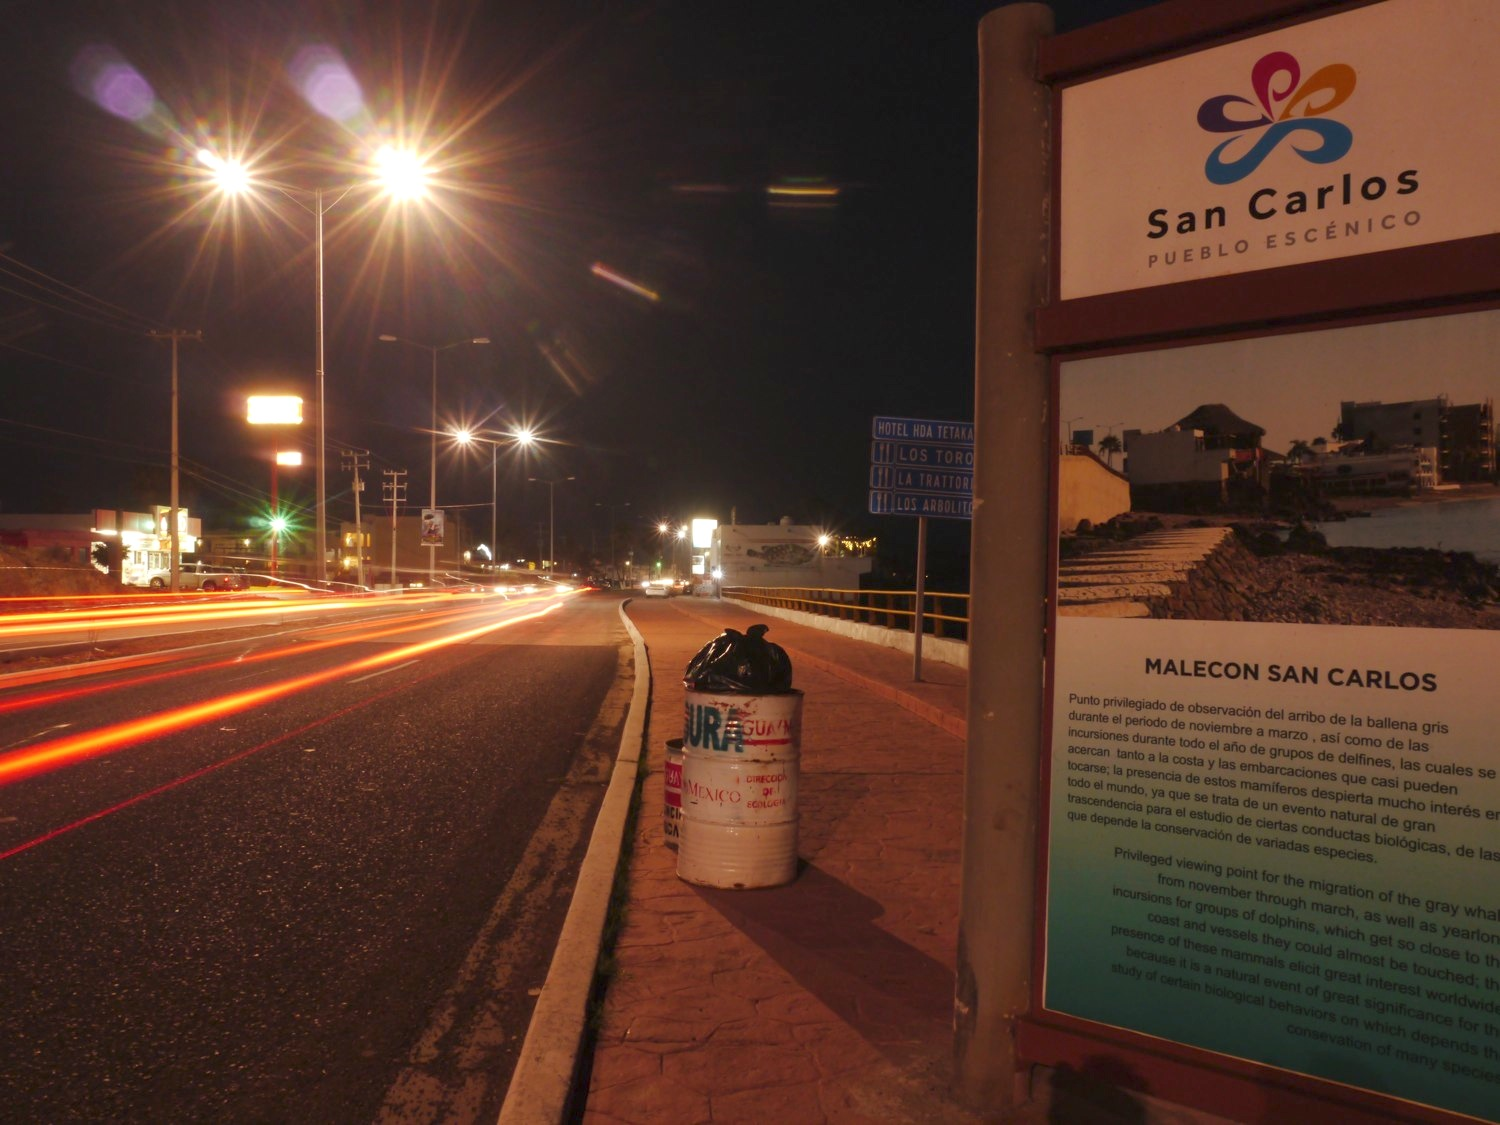 san carlos can never be a pueblo escenico as long as it is owned by